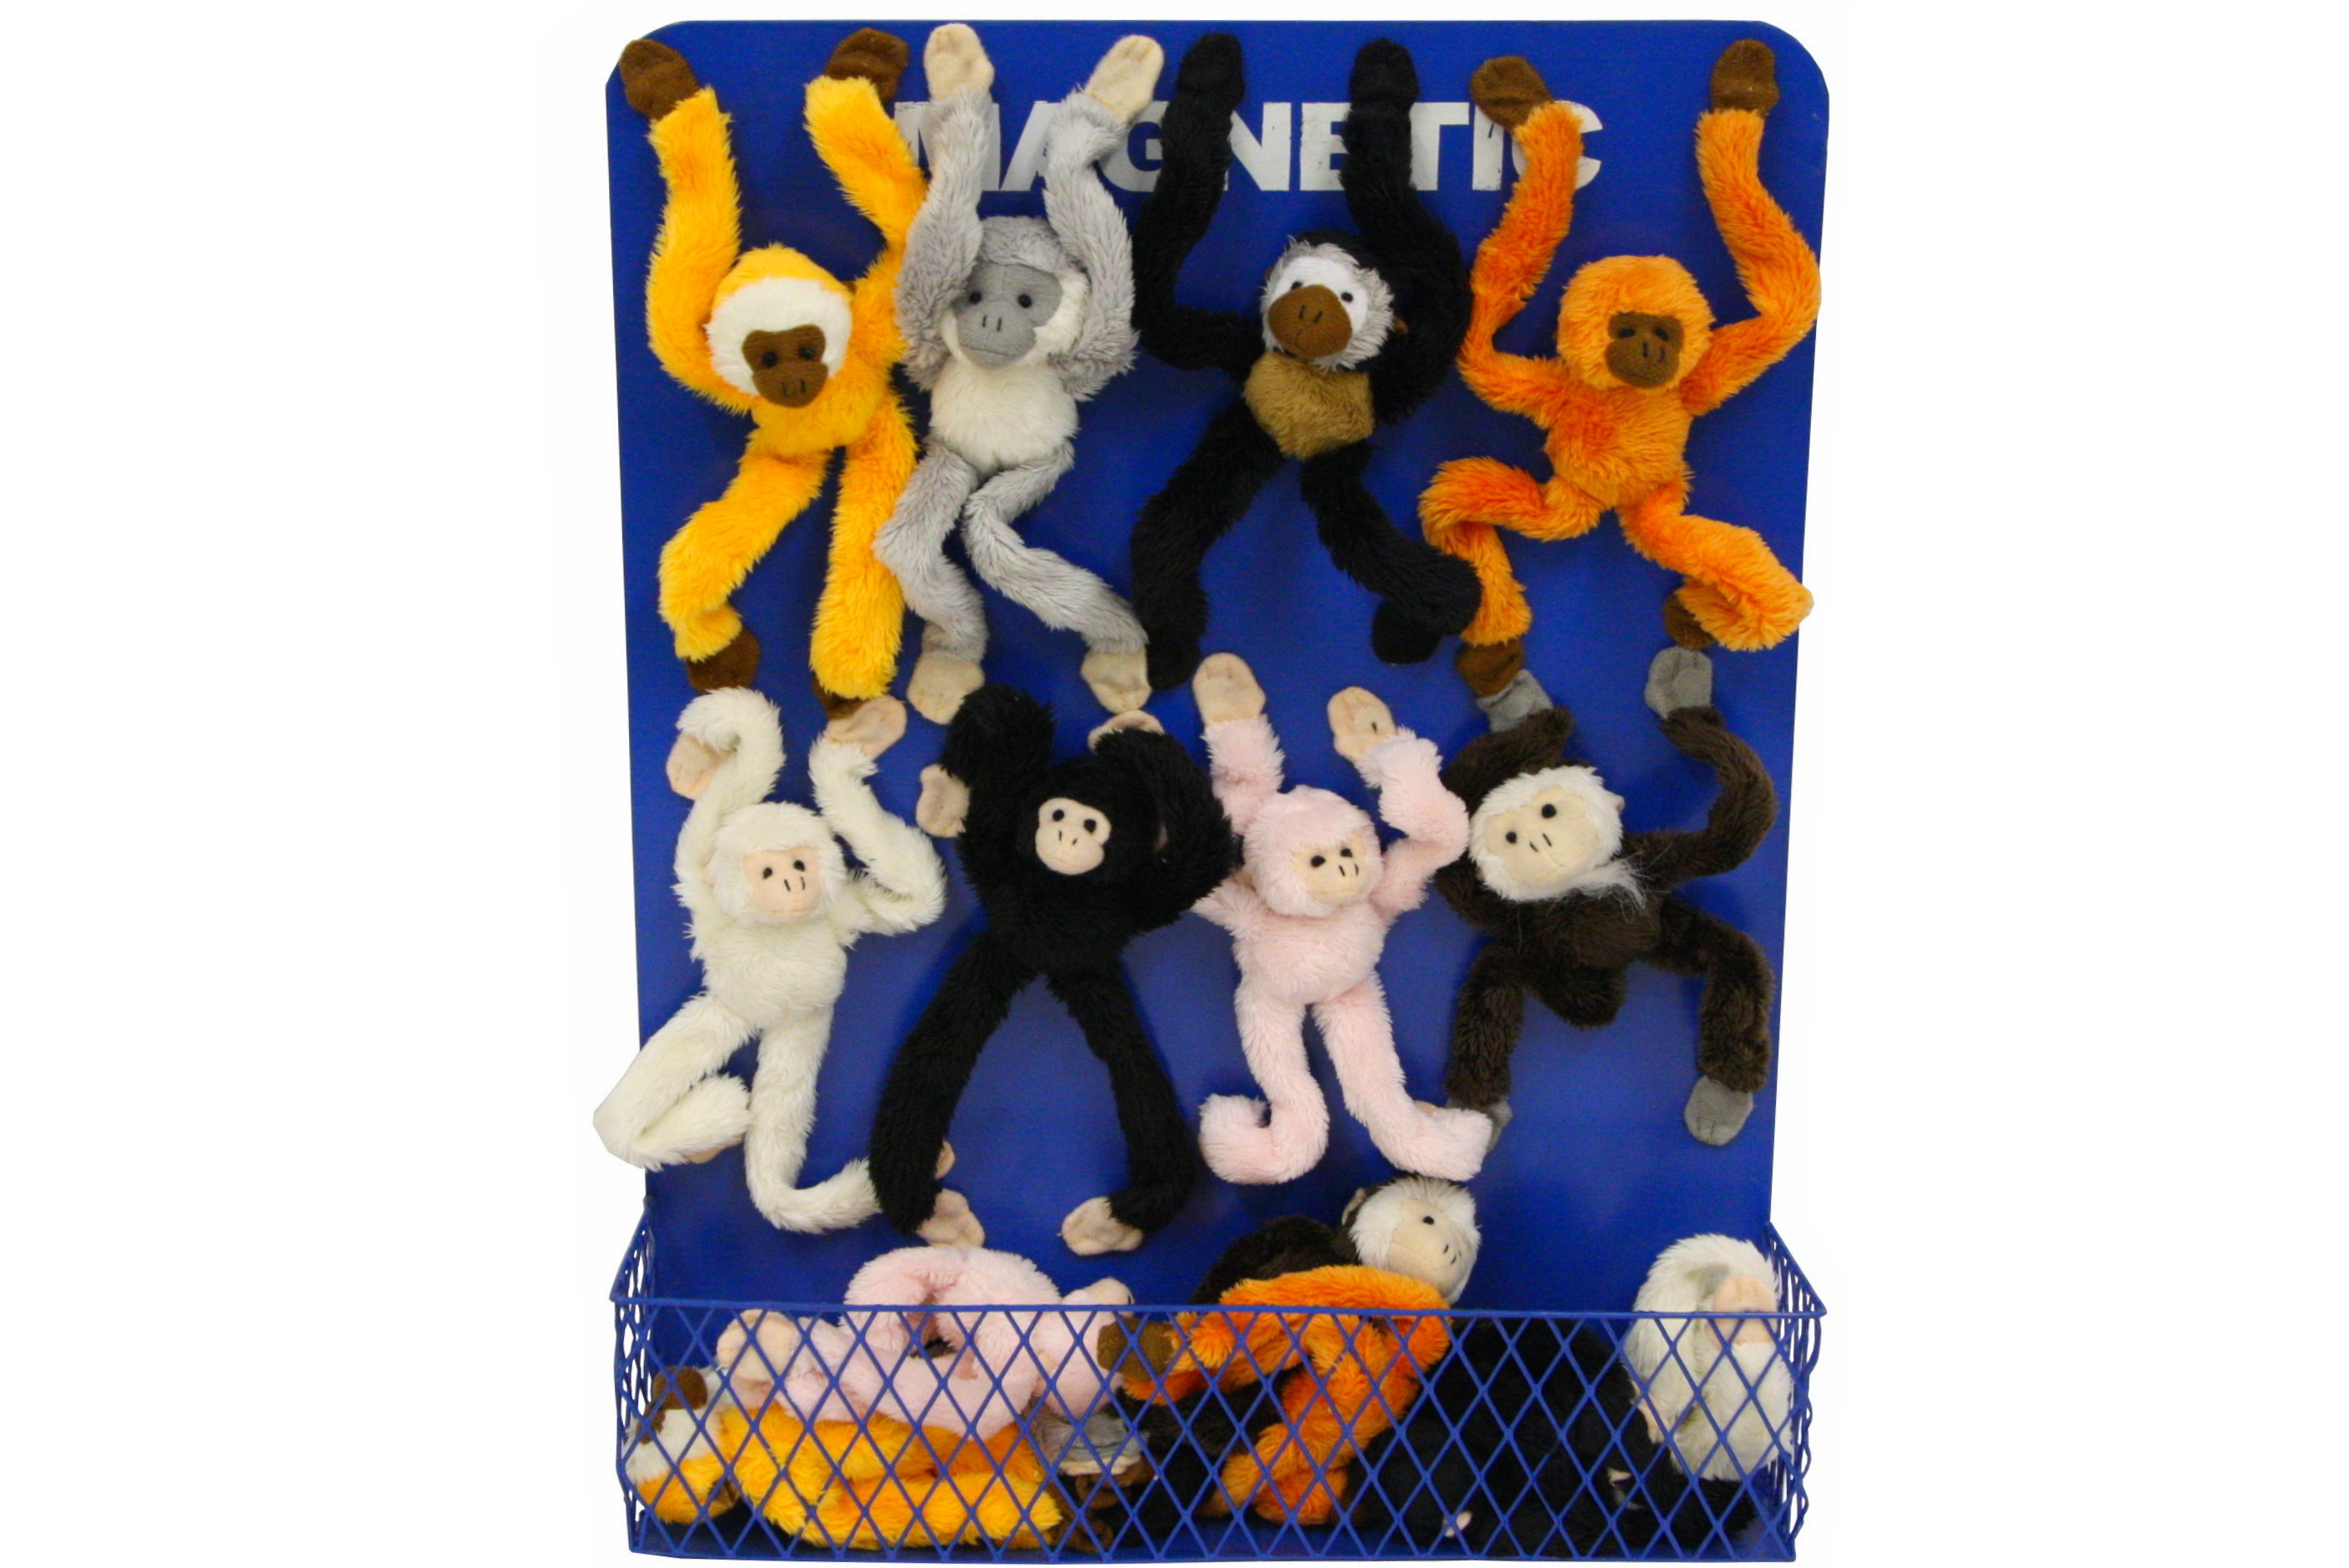 Monkey Magnets With Magnetic Display Stand - 8 Assorted